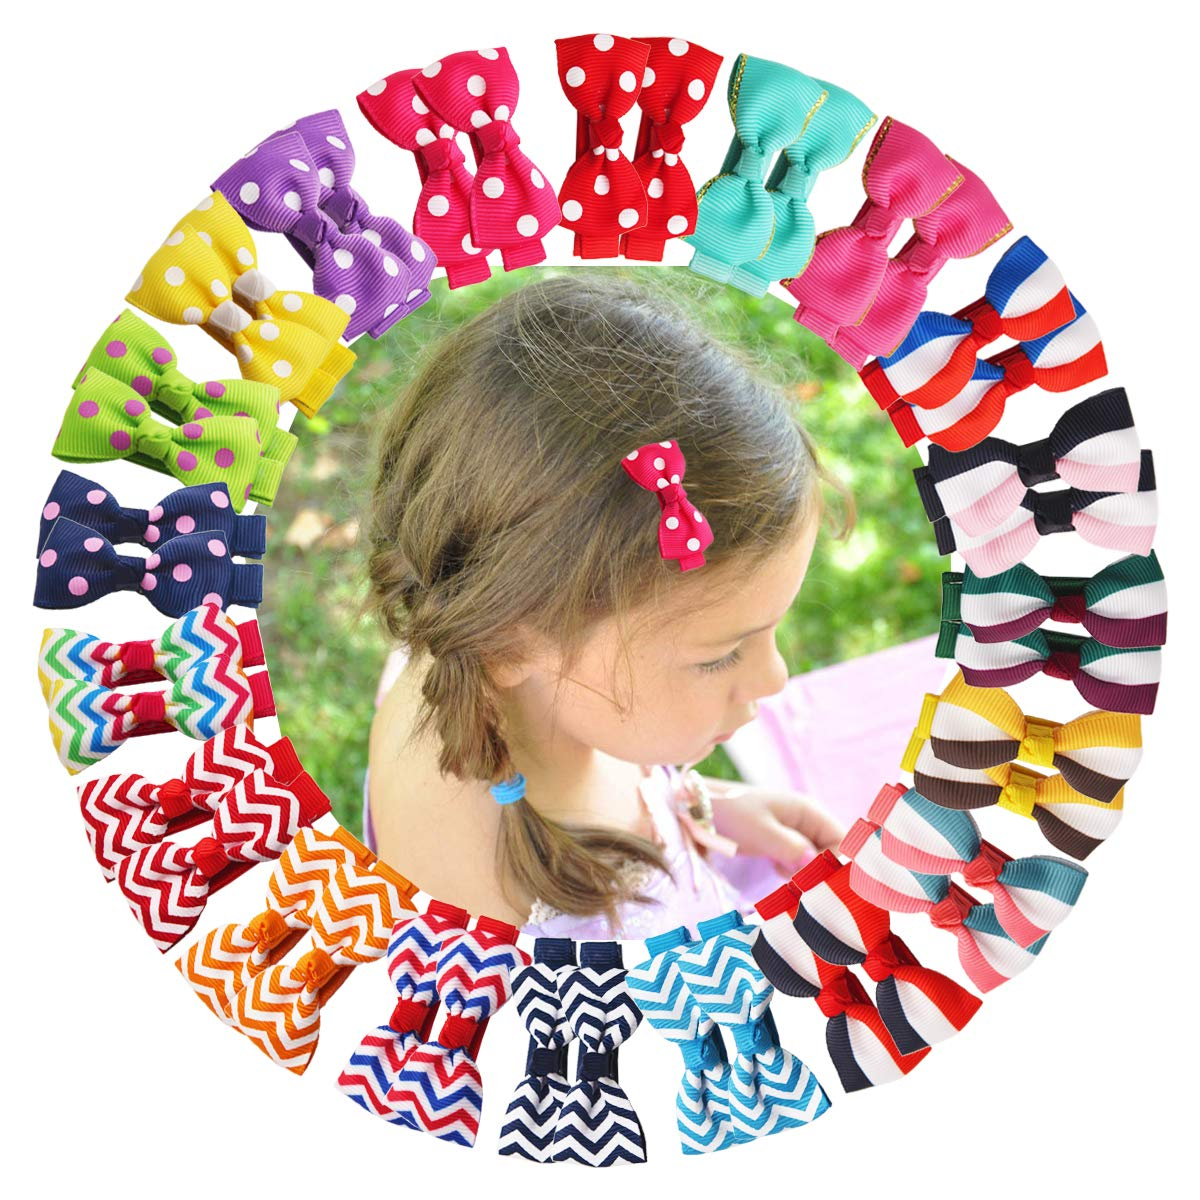 40PCS 20Colors In wholesale Pair Baby Girls Gro OFFer Bows 2Inch Hair Tiny Clips